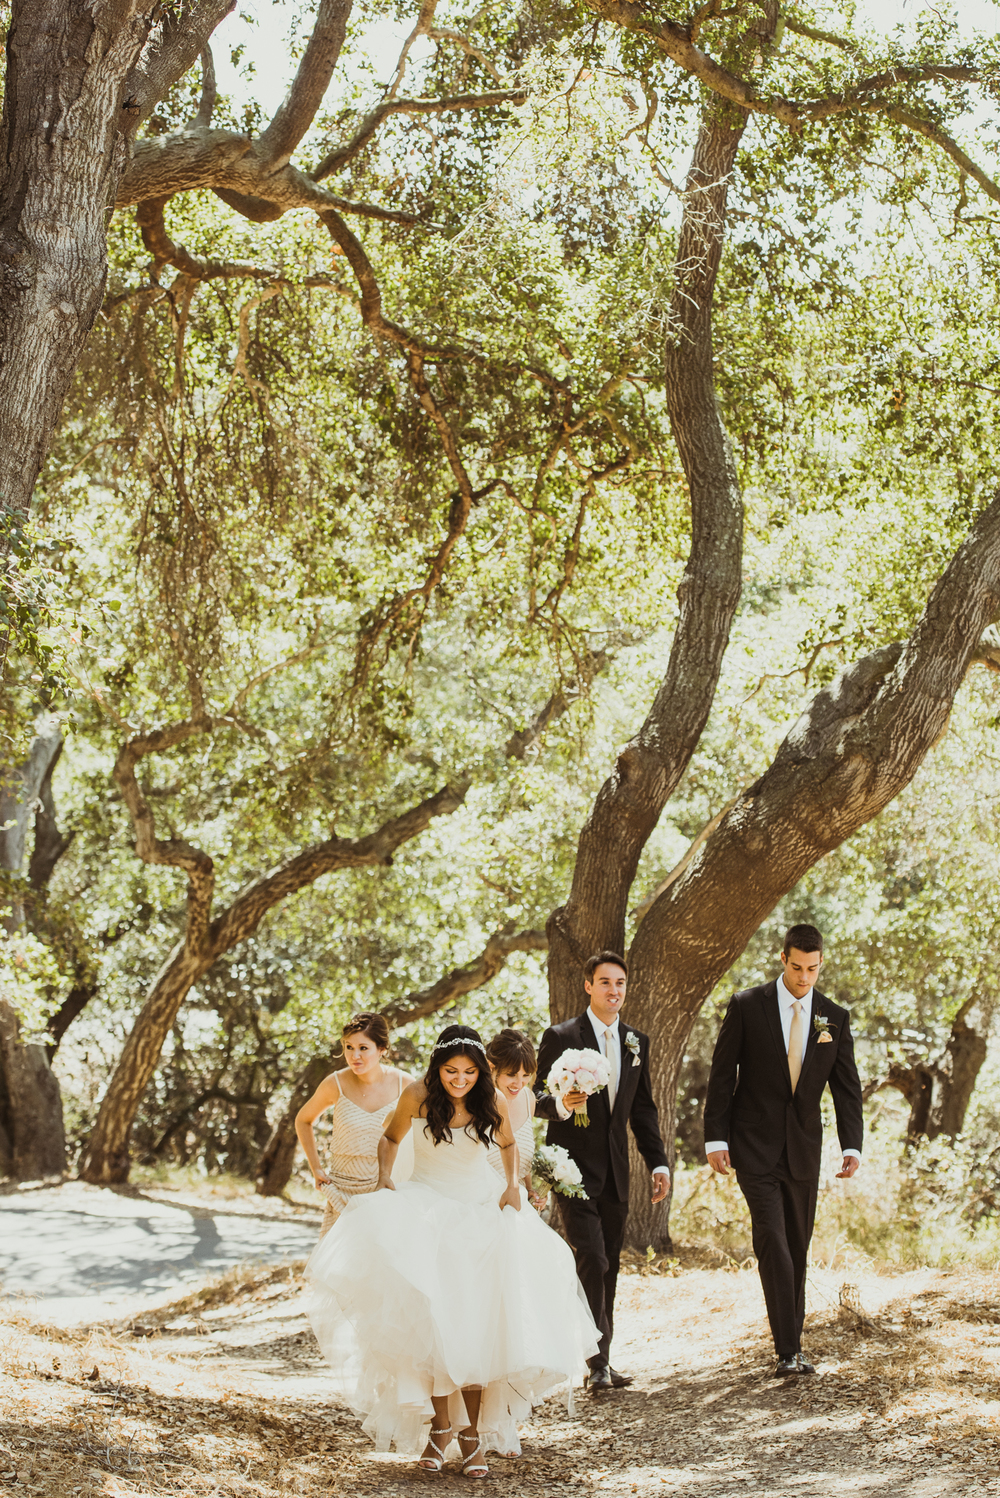 ©Isaiah & Taylor Photography - Inn of the Seventh Ray Wedding, Topanga Canyon California-60.jpg